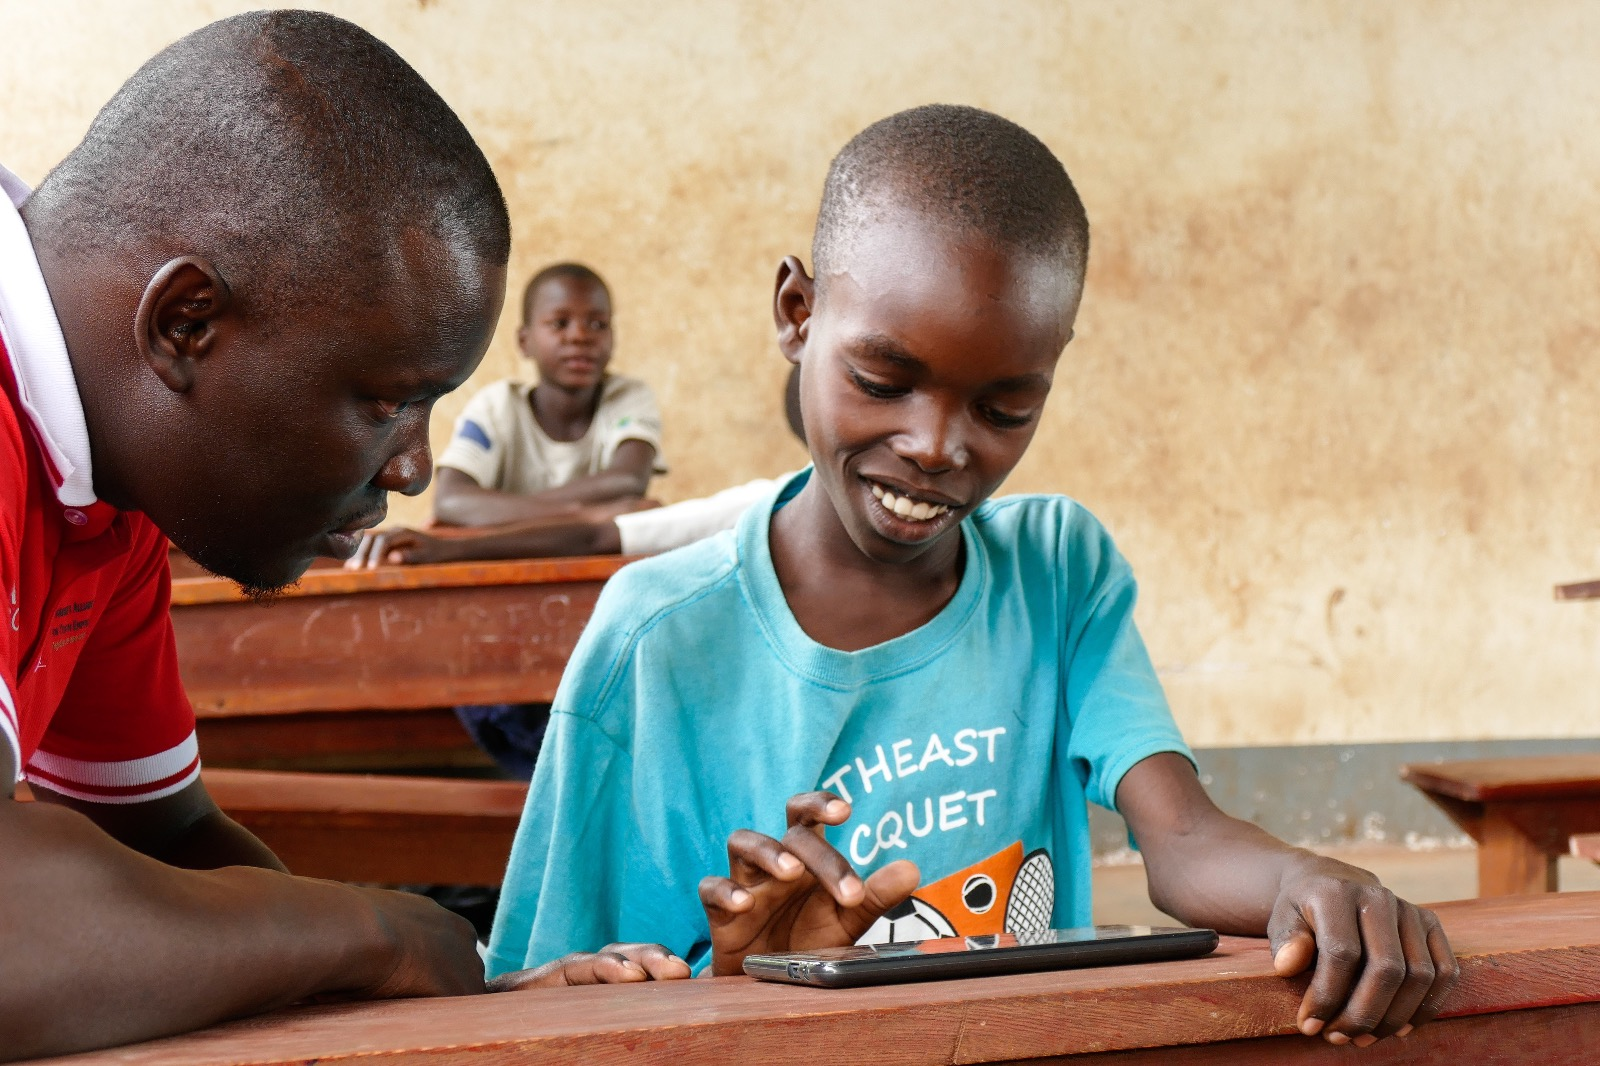 Xavier Project partners with Enuma to launch Kitkit School